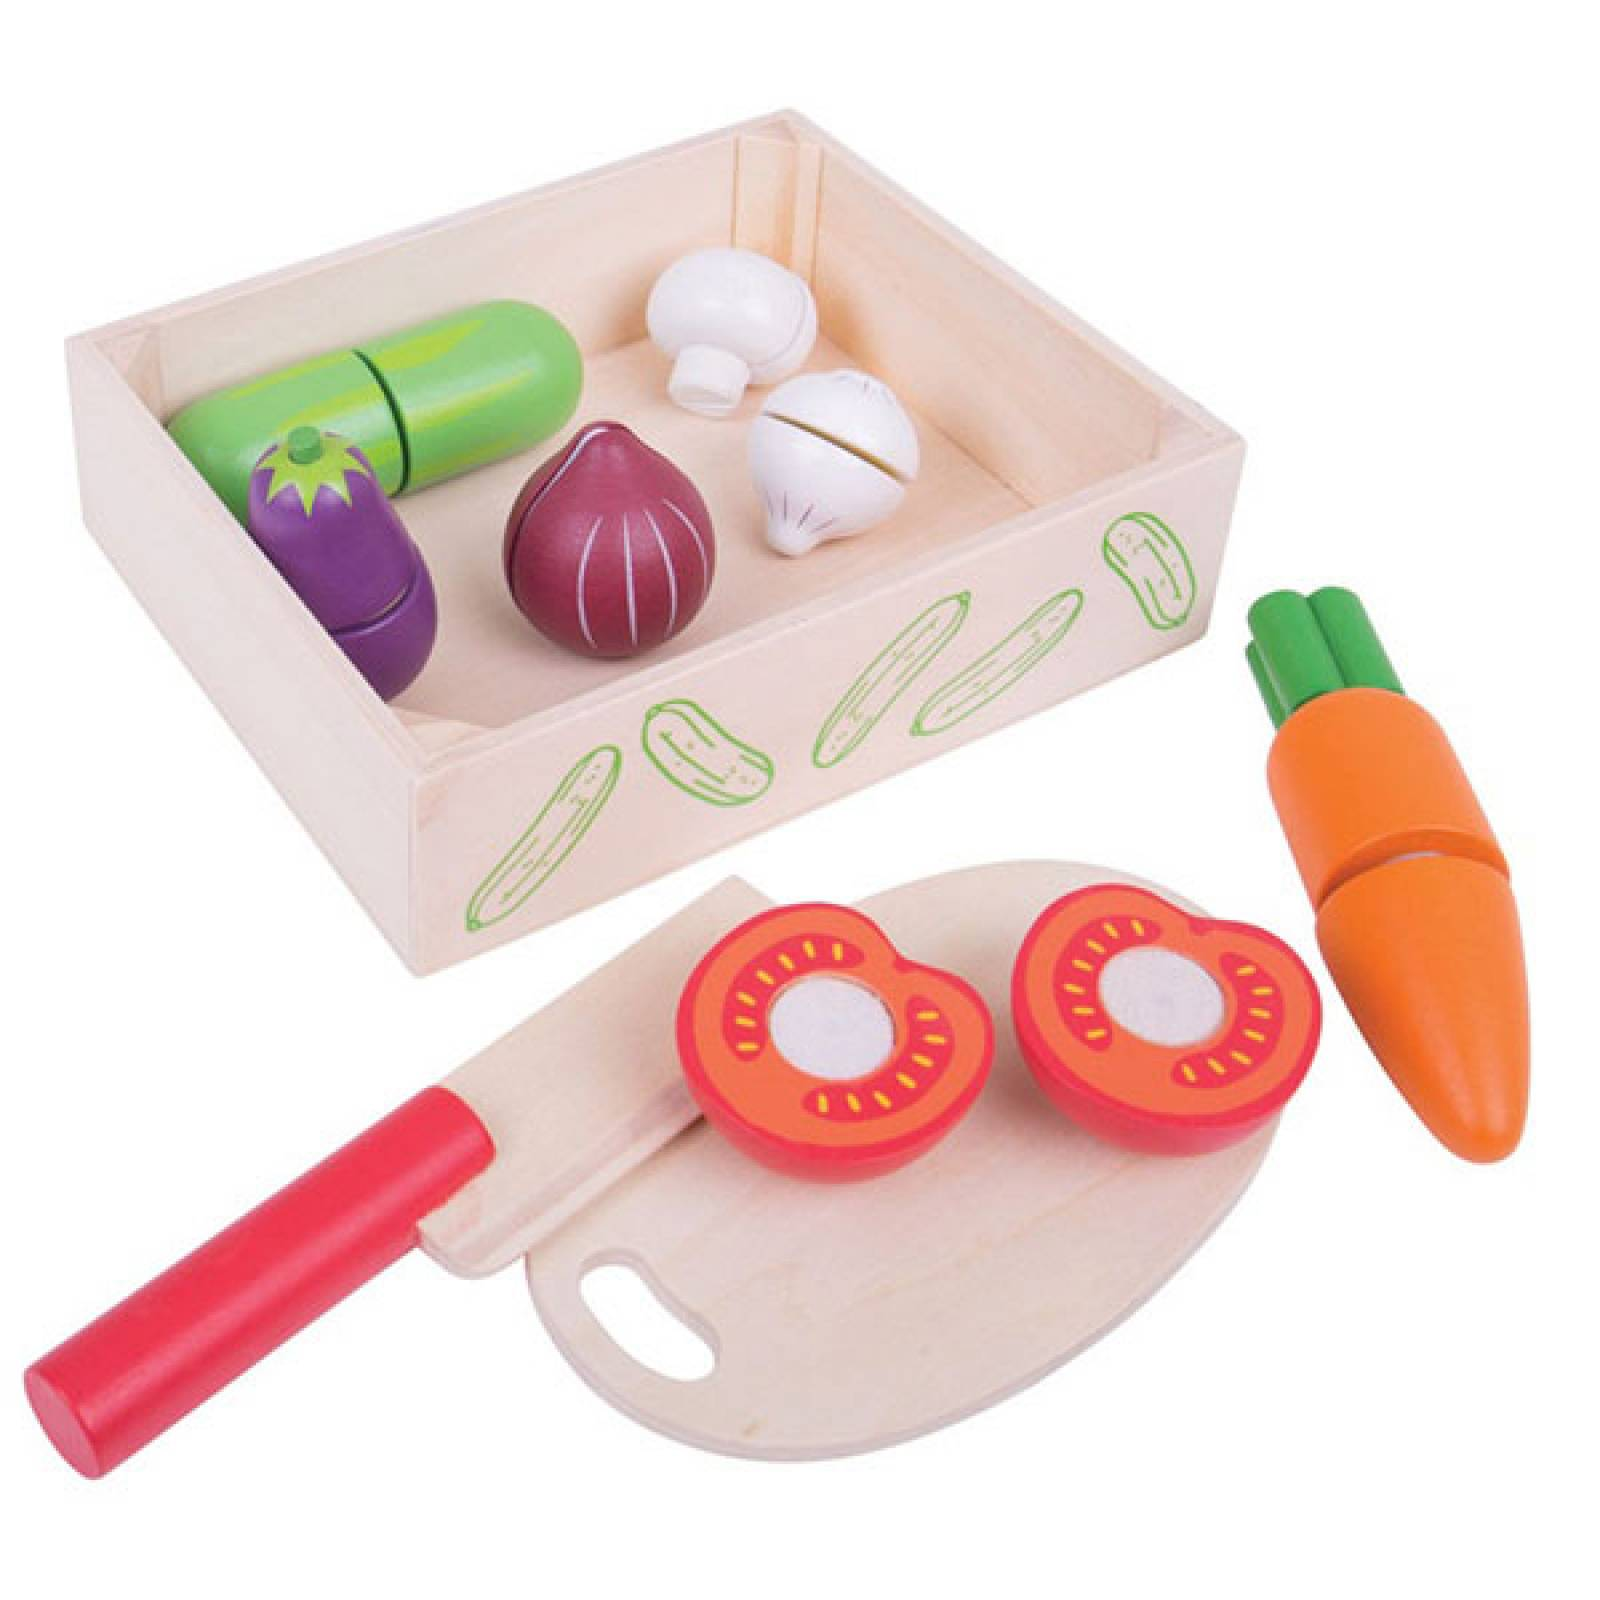 Cutting Vegetables Wooden Food In Wooden Box